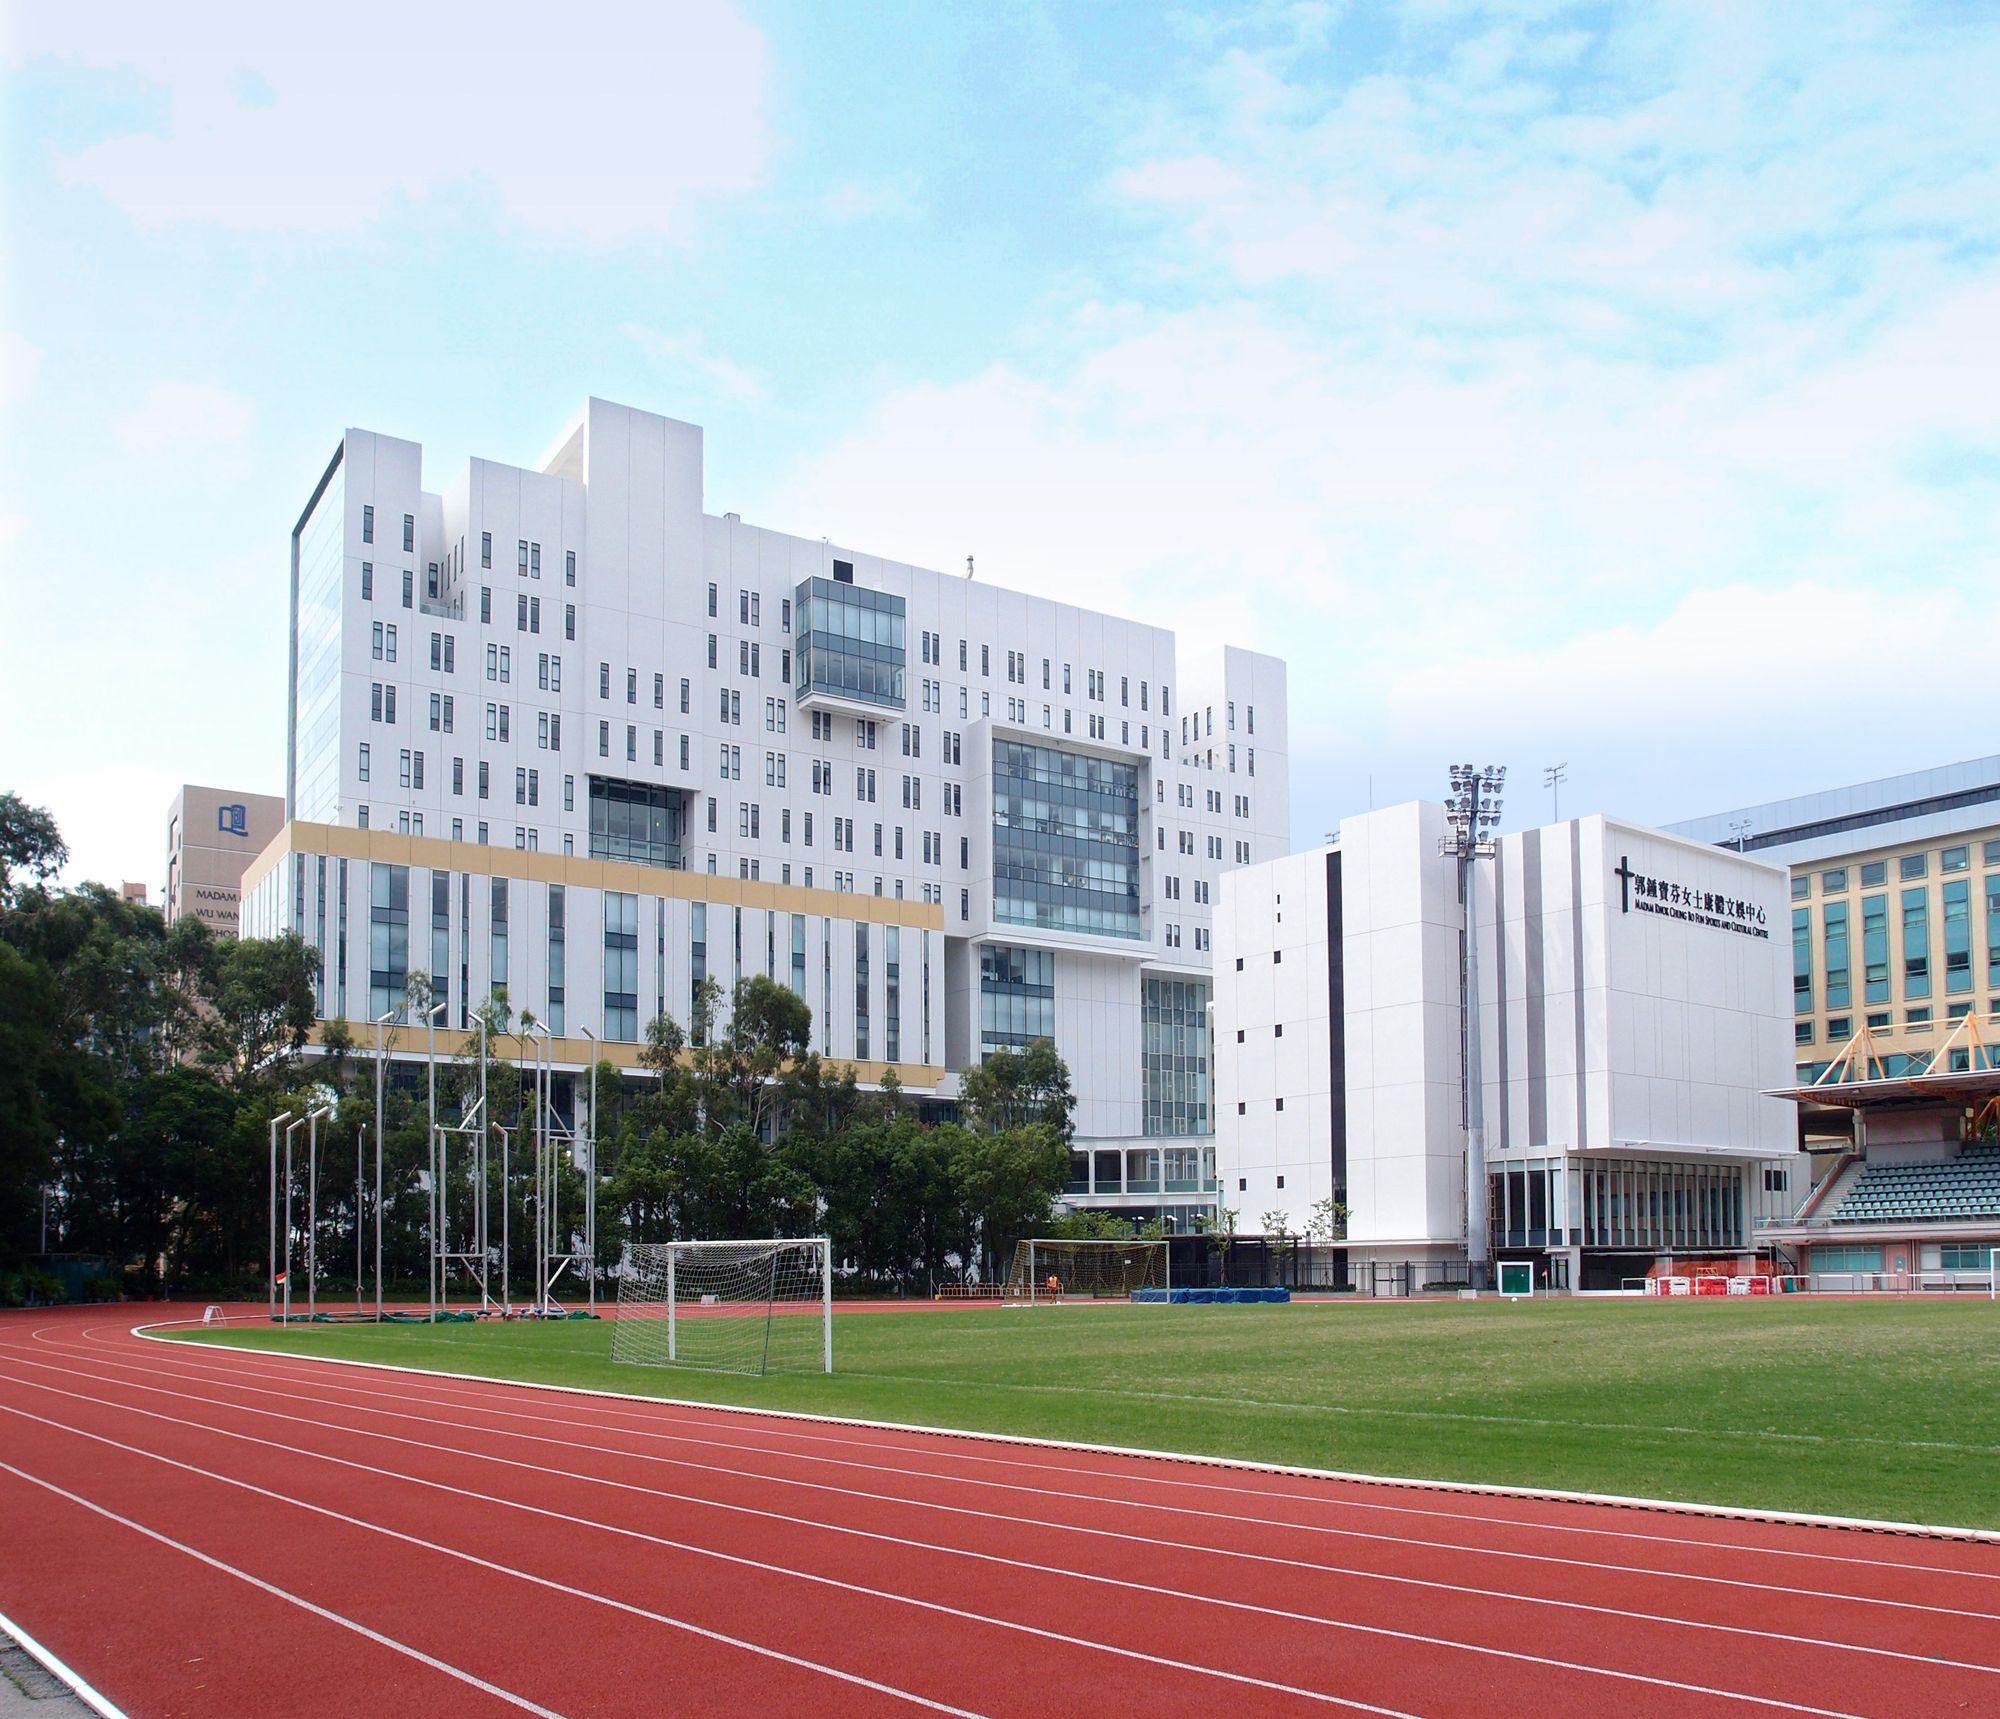 Baptist University Campus Development Phase 3 / Location: Kowloon, HK / by AGC Design